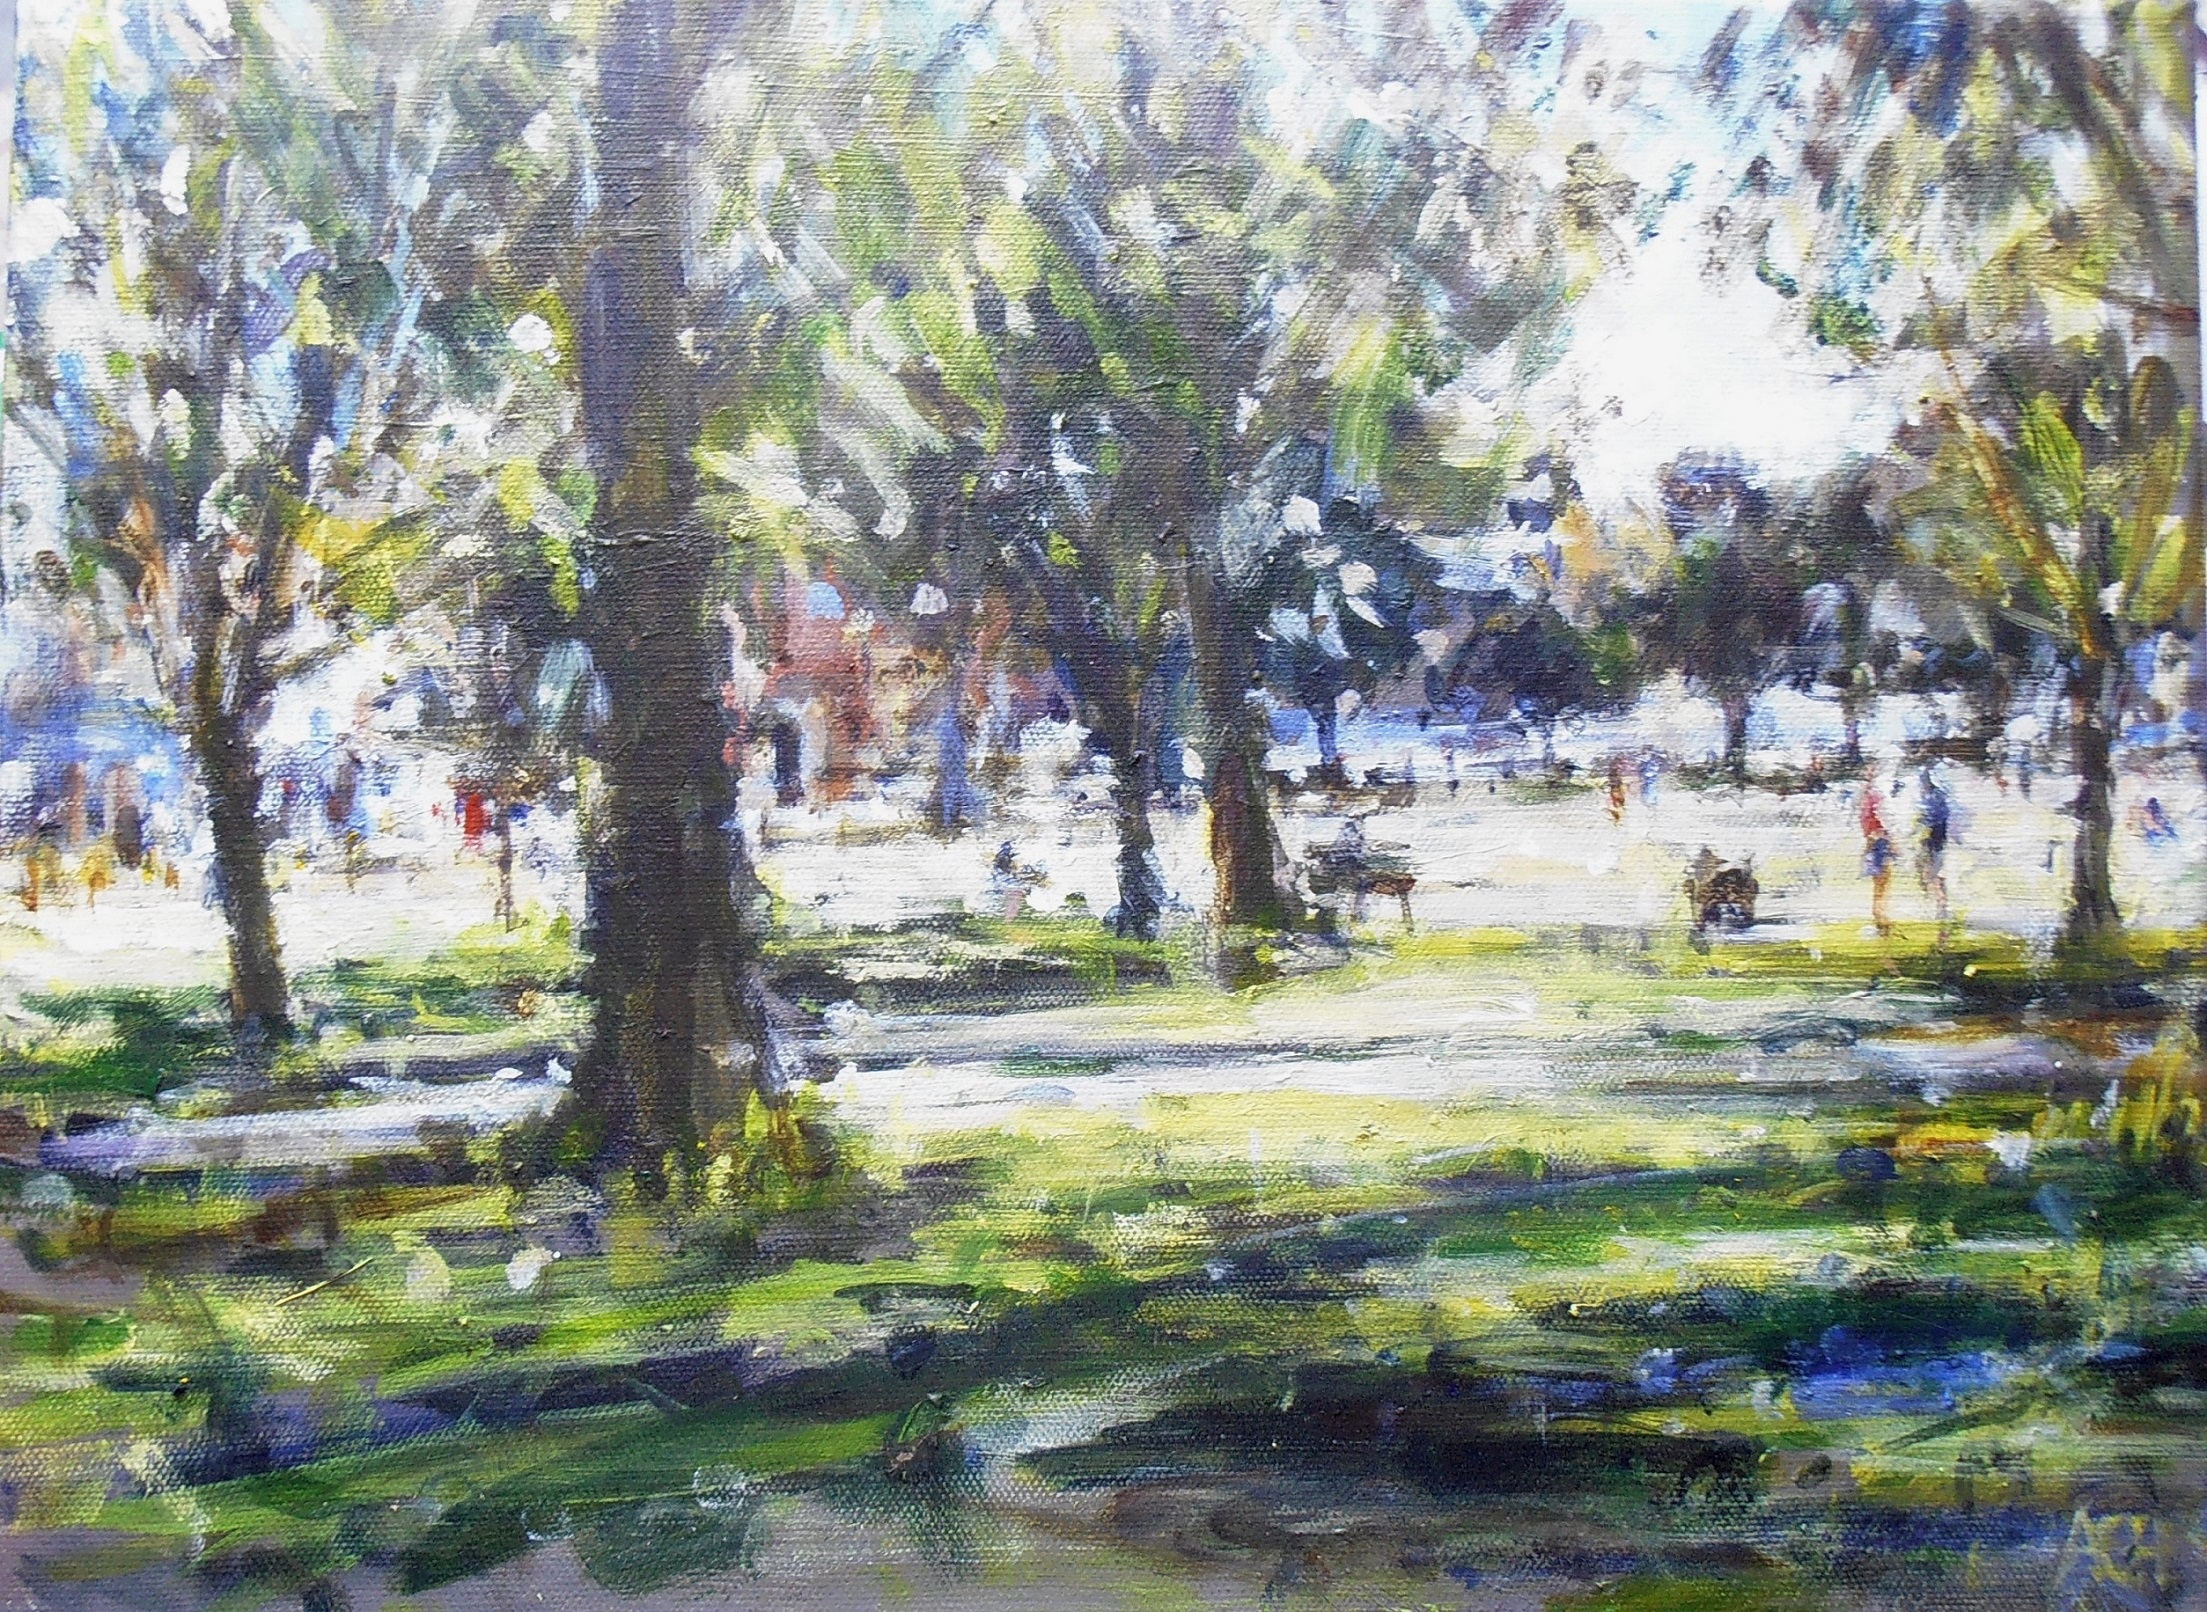 Wandsworth Common Andrew Horrod Acrylic on canvas, 30 x 40 cm